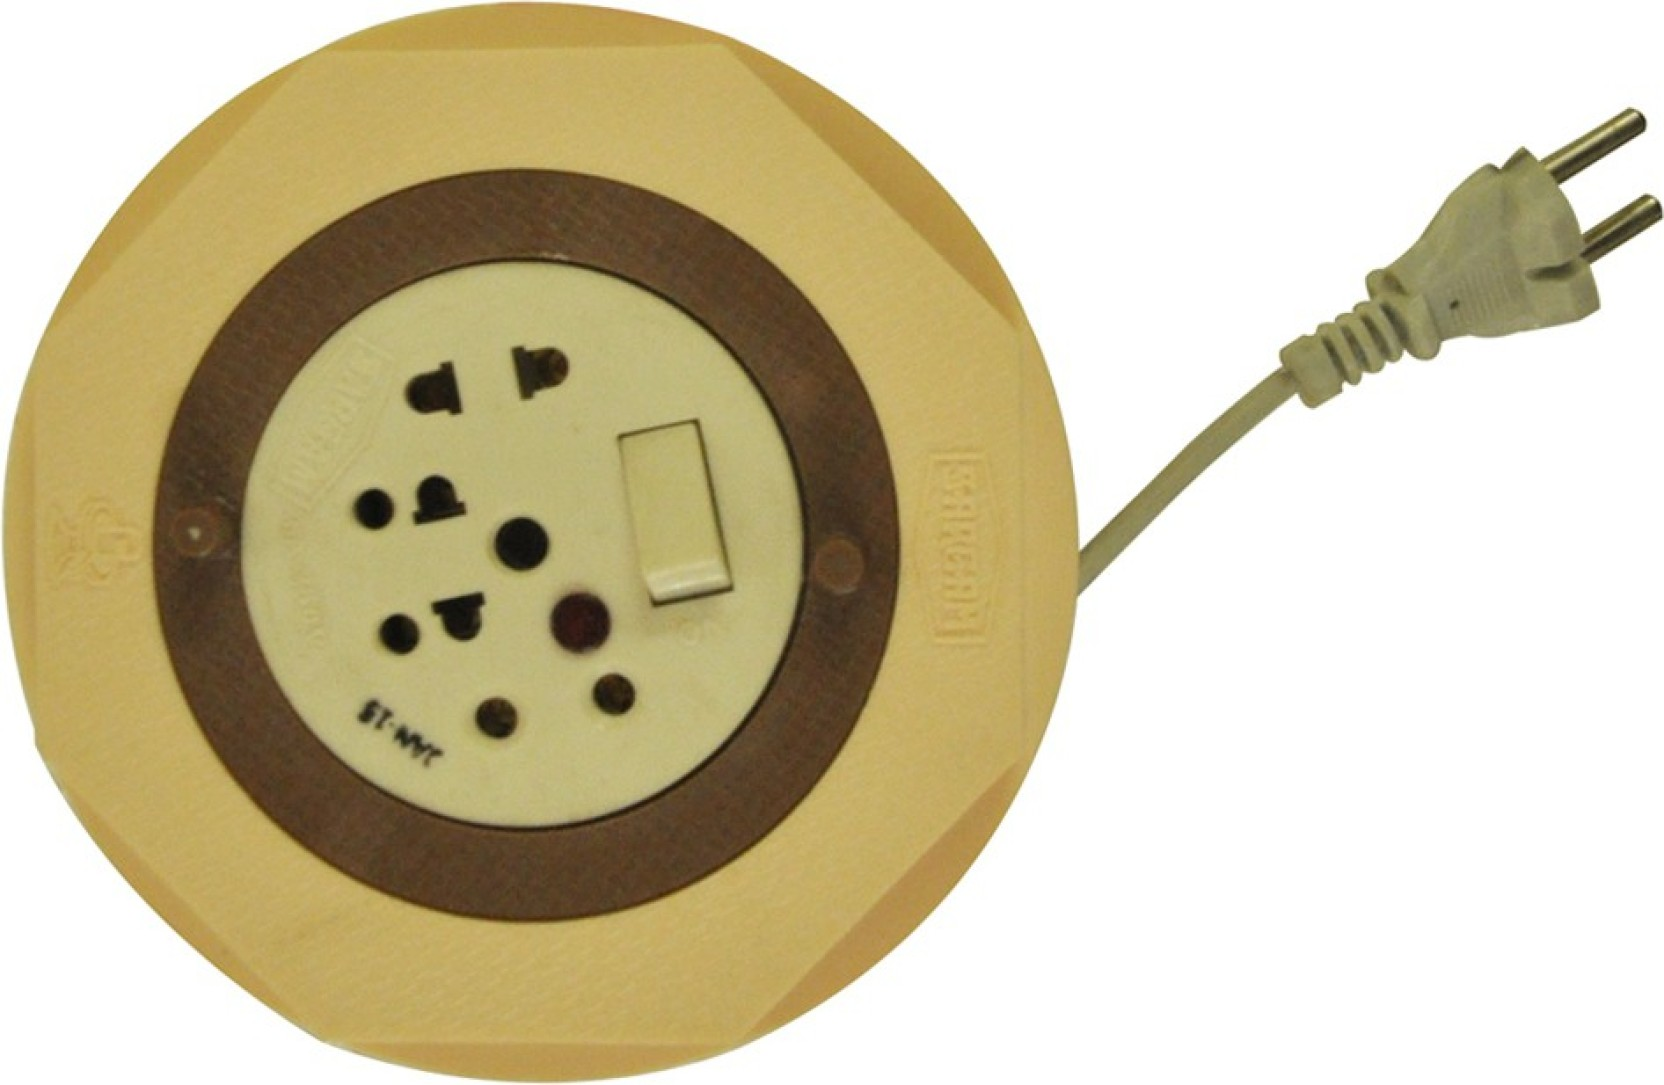 Sargam Extension Cord 8mtr 5 Socket Surge Protector Price In India Wiring Add To Cart